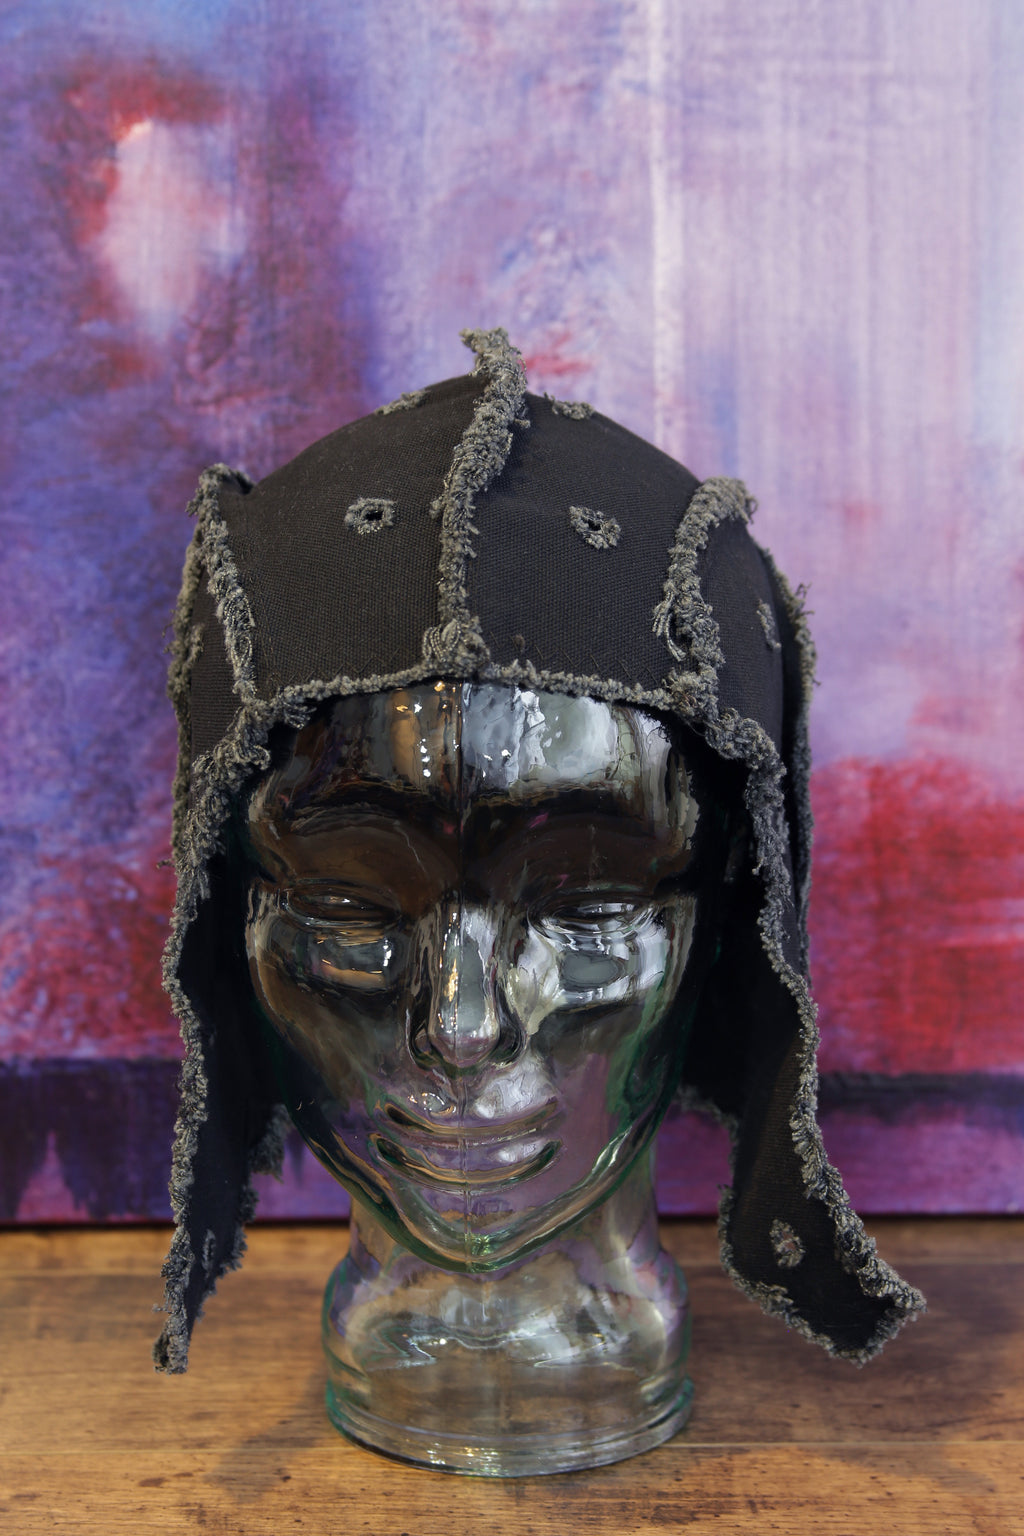 black artifacted bonnet / helmet / hat from secret lentil